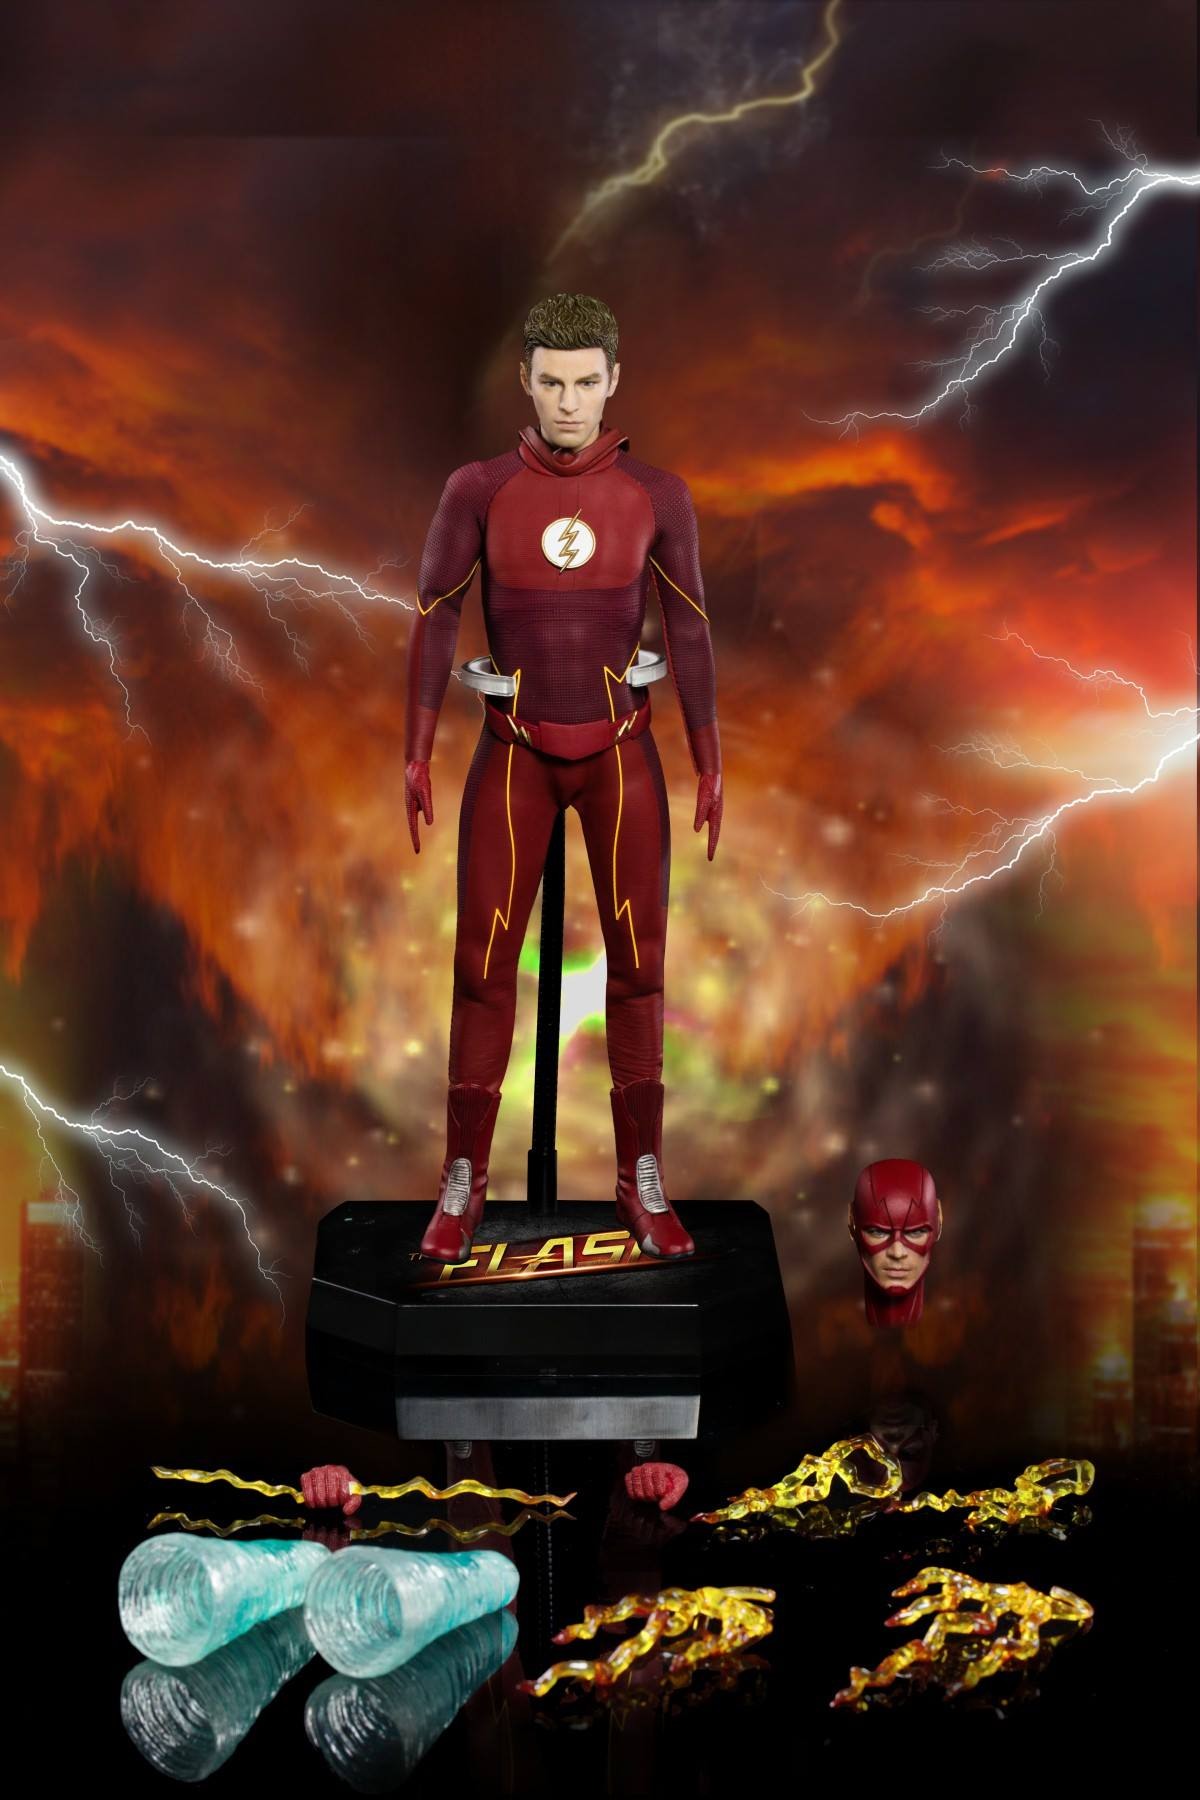 The Flash Tv Series Figure By Star Ace Toys The Toyark